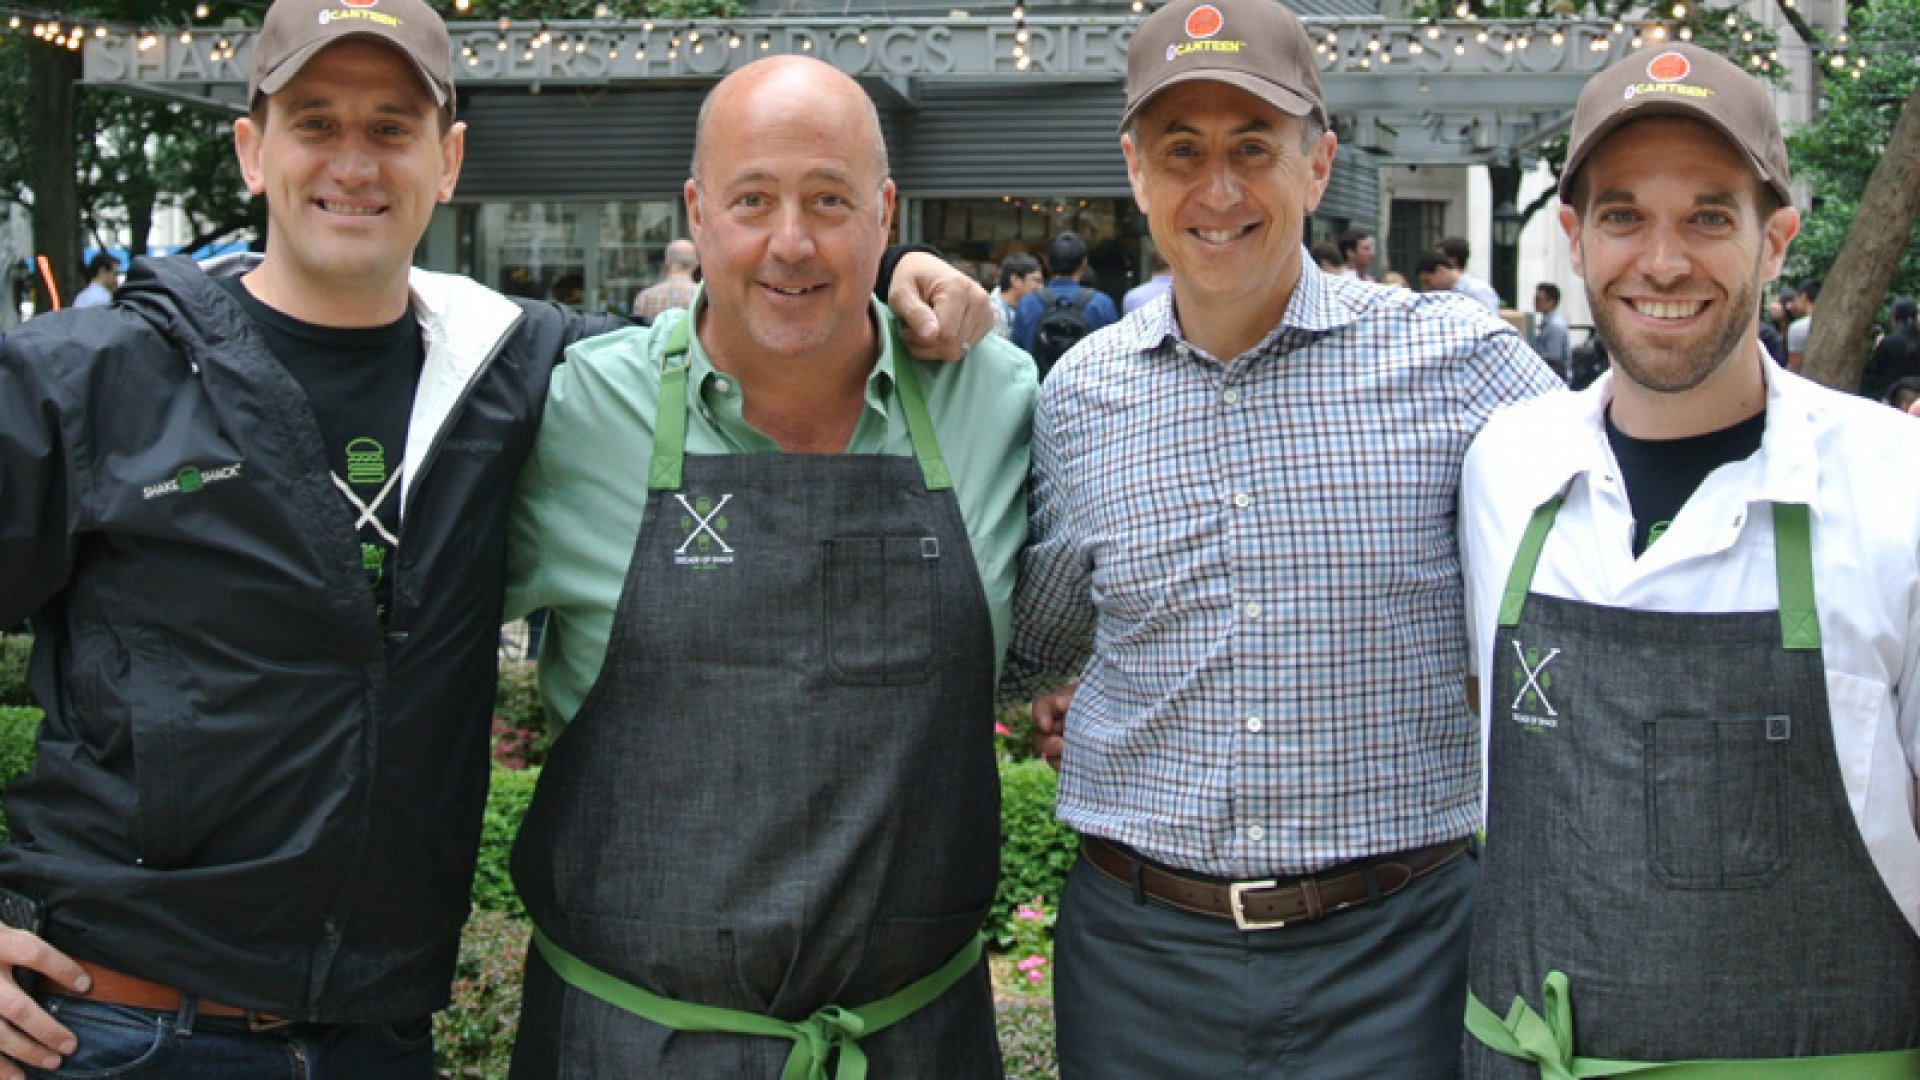 From left: Shake Shack CEO Randy Garutti, celebrity Chef Andrew Zimmern, founder Danny Meyer and culinary director Mark Rosati at Madison Square Park. 